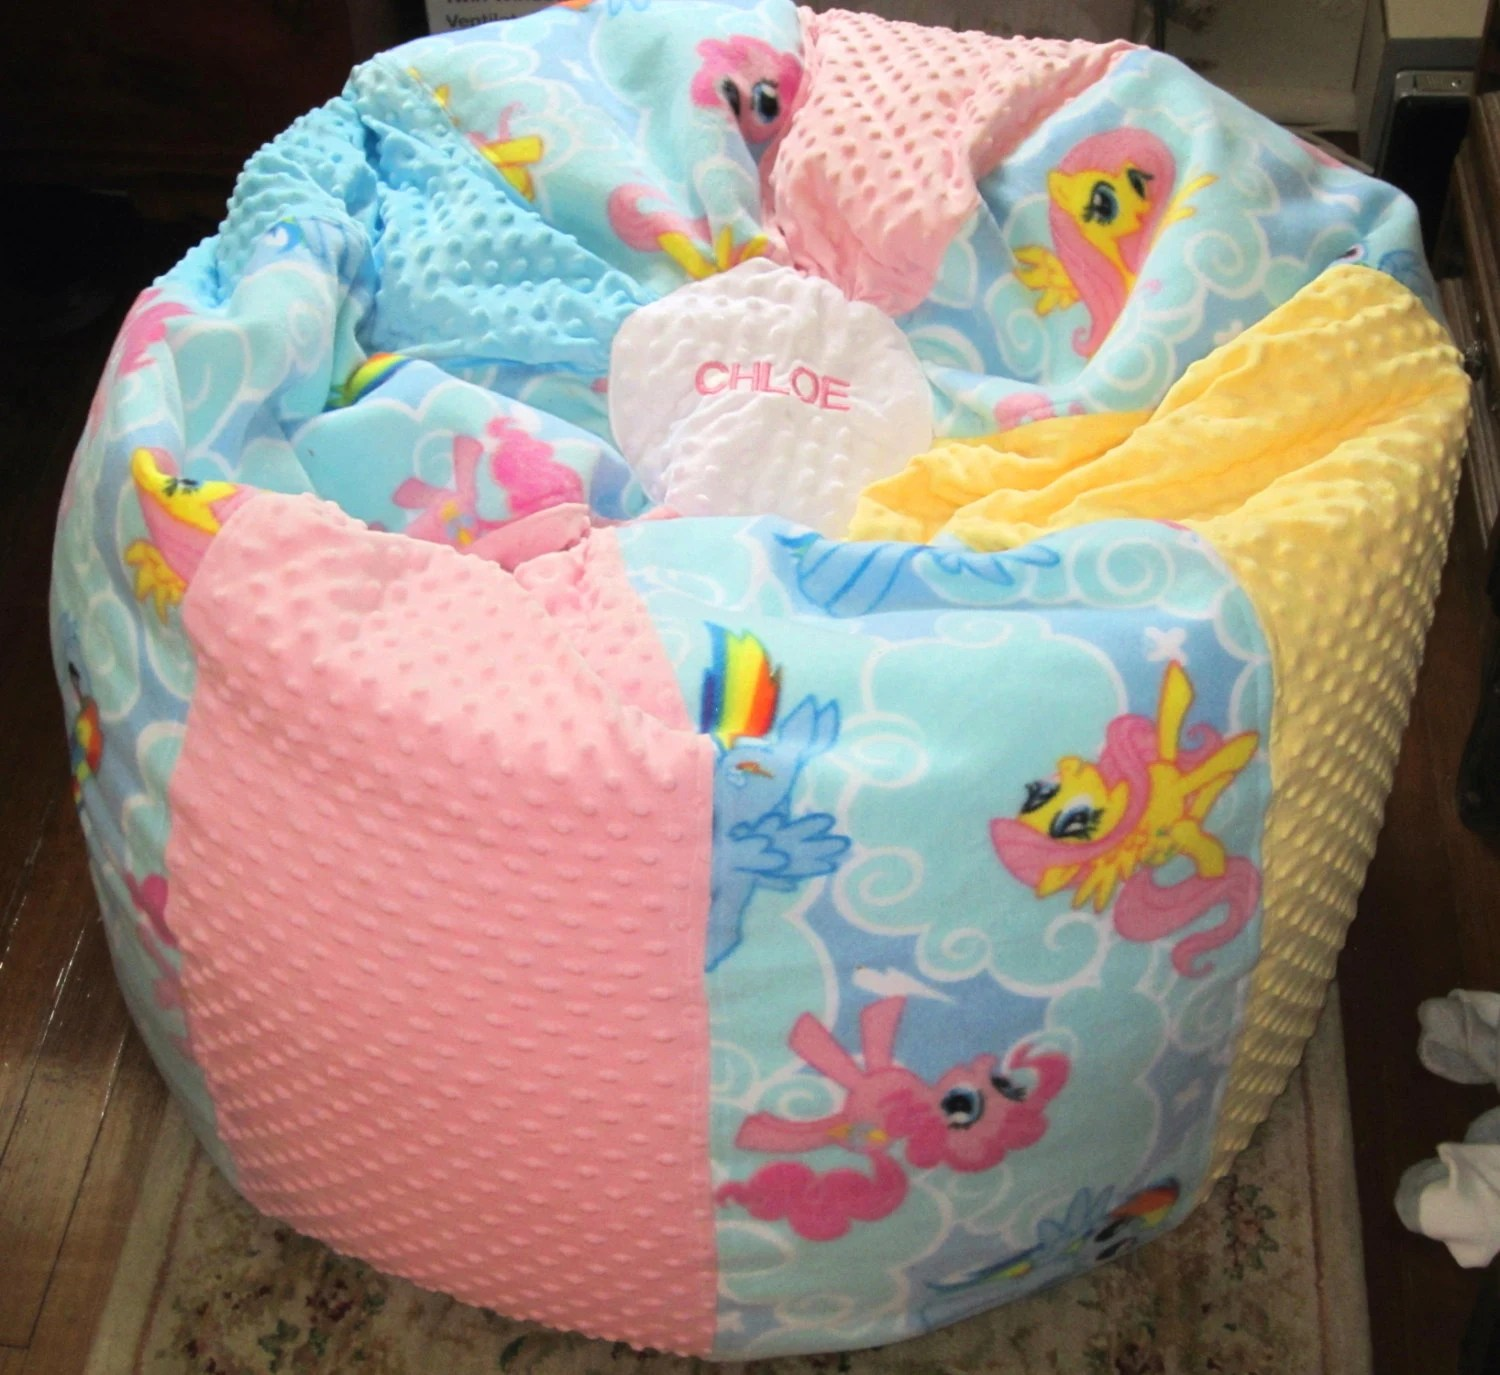 Bean Bag Chair Covers Only Tween My Little Pony Bean Bag Chair Cover Only Add A Name Easy Fill Directions Zipper Closed For Easy Refills